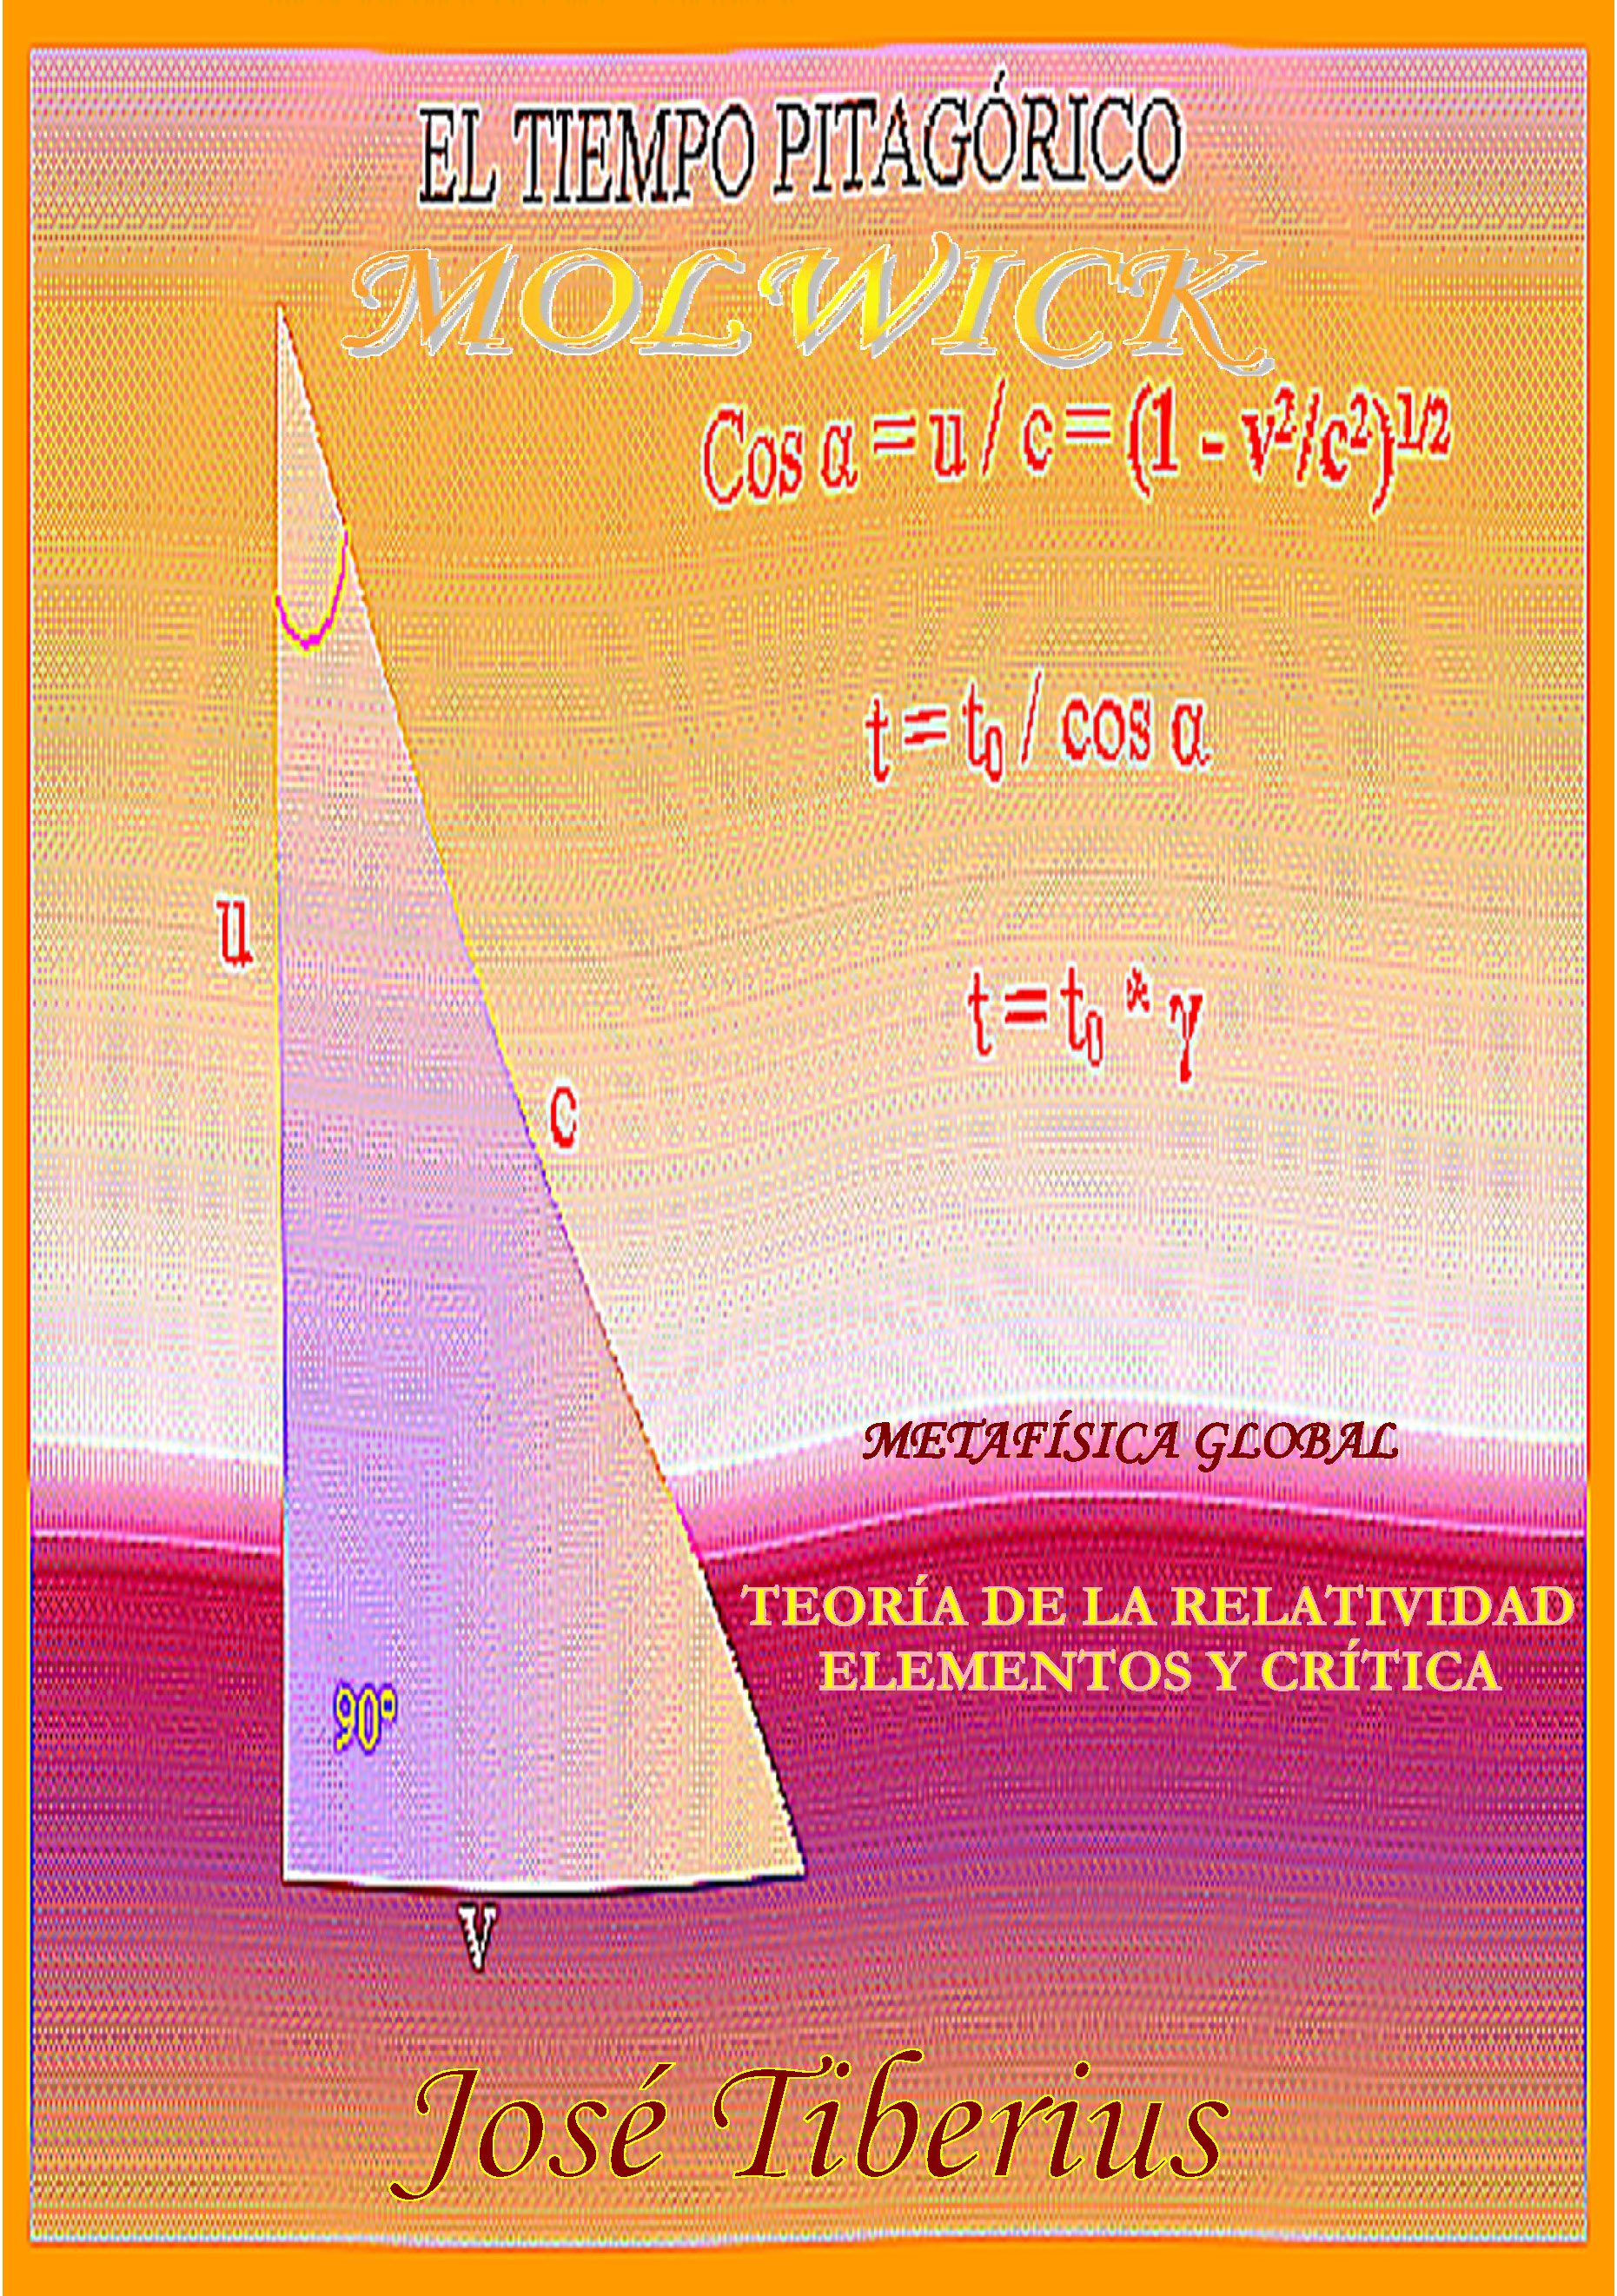 Libros De Fisica Pdf Descargar Gratis Pdf De La Física Global Ebooks